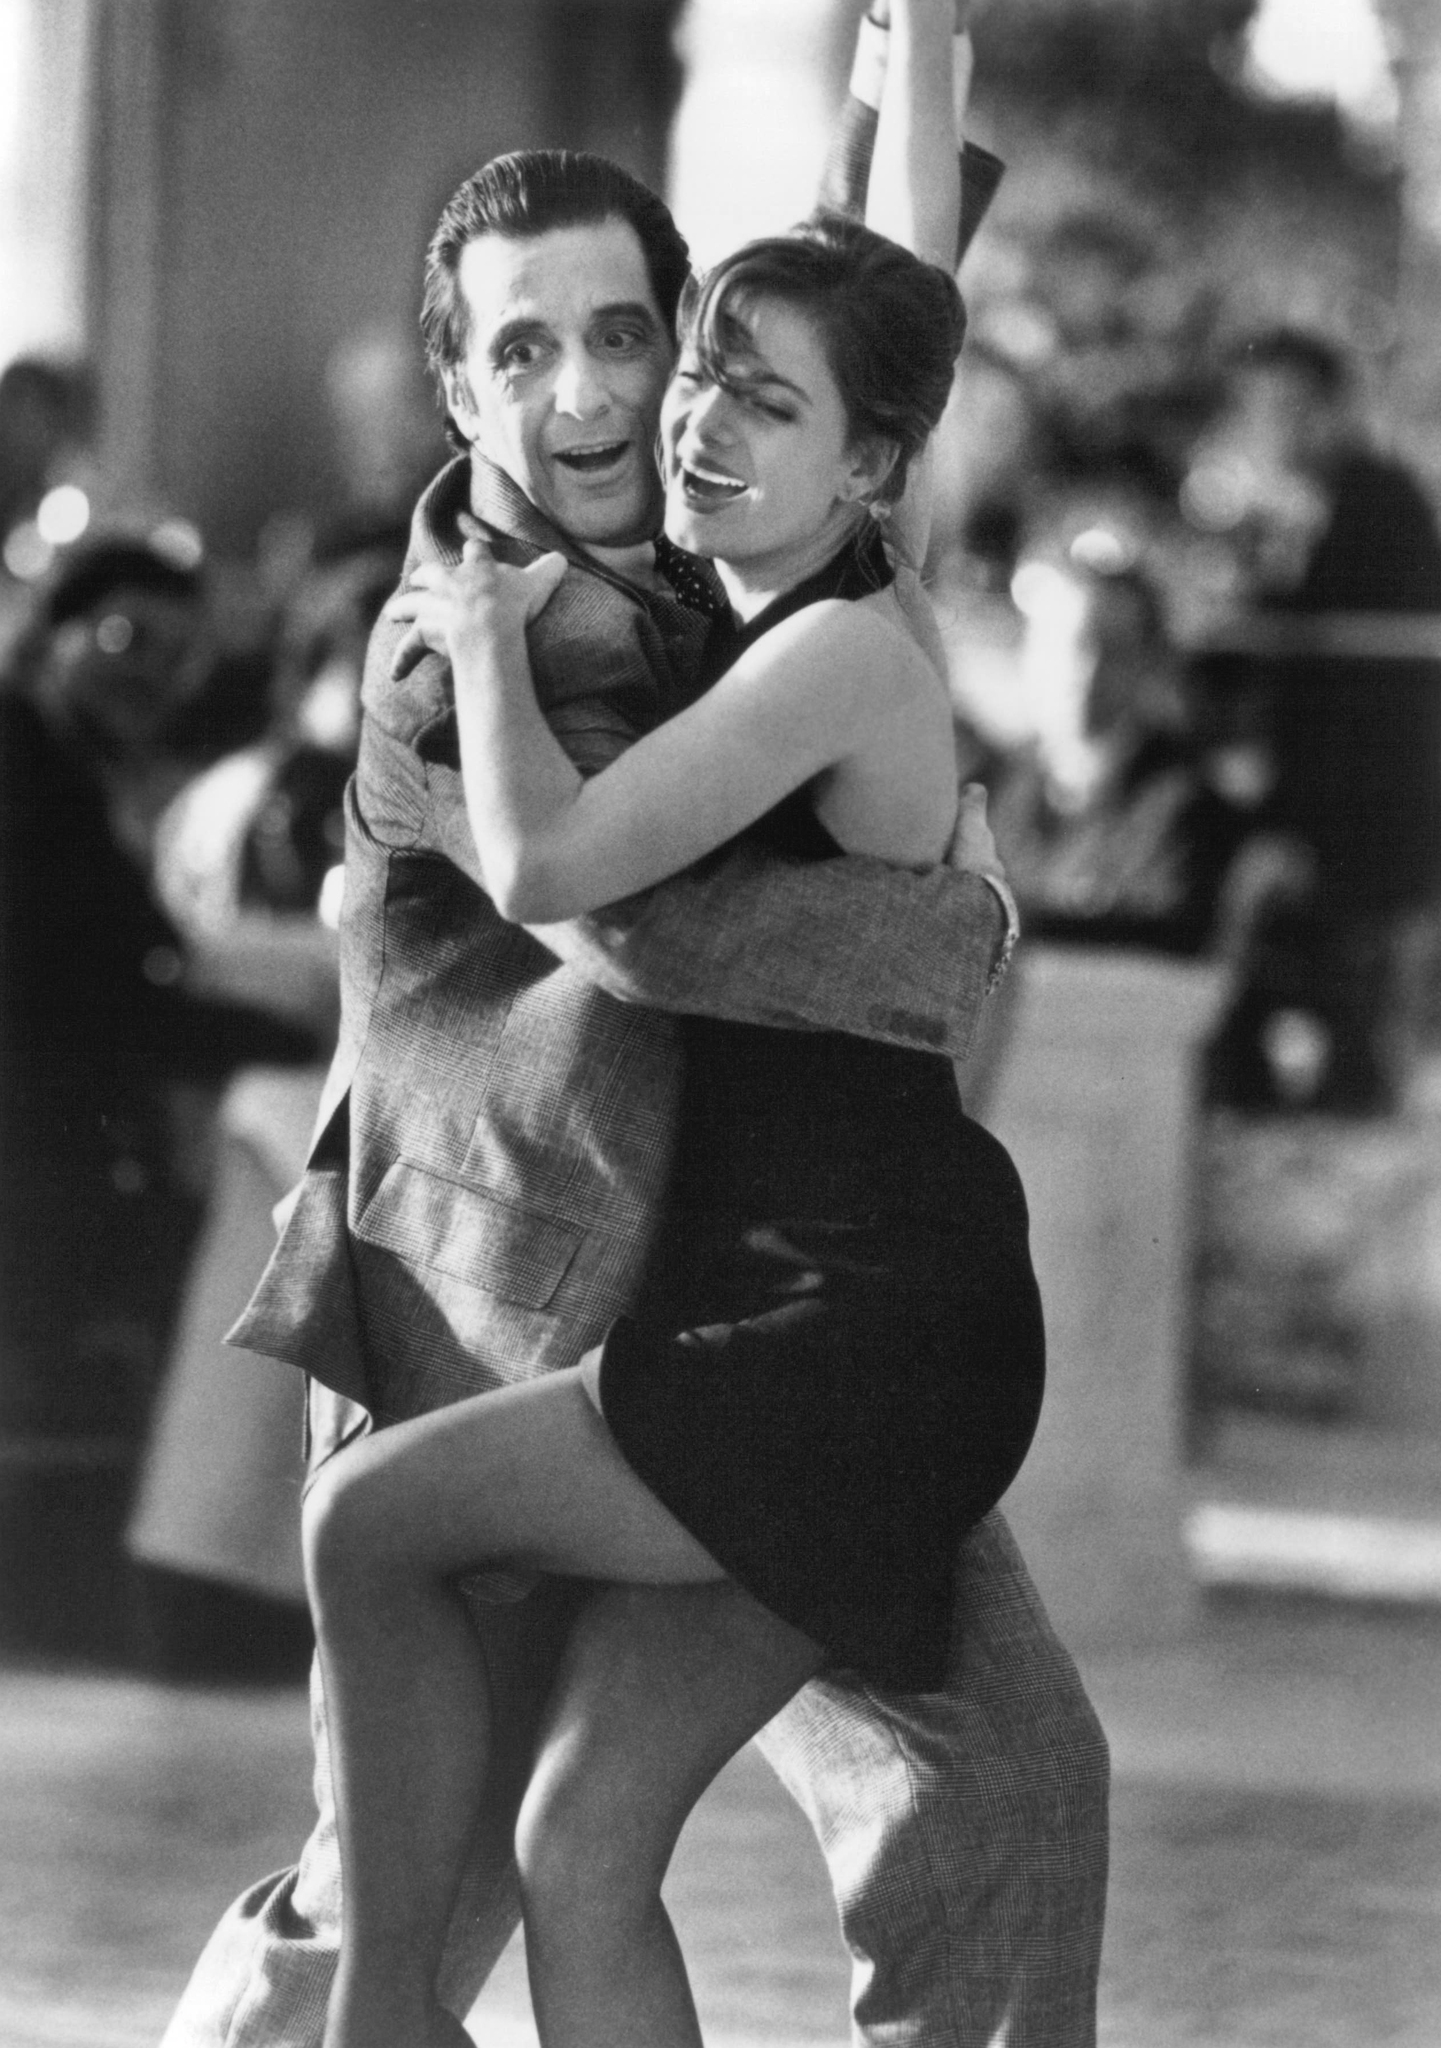 Al Pacino and Gabrielle Anwar in Scent of a Woman (1992)